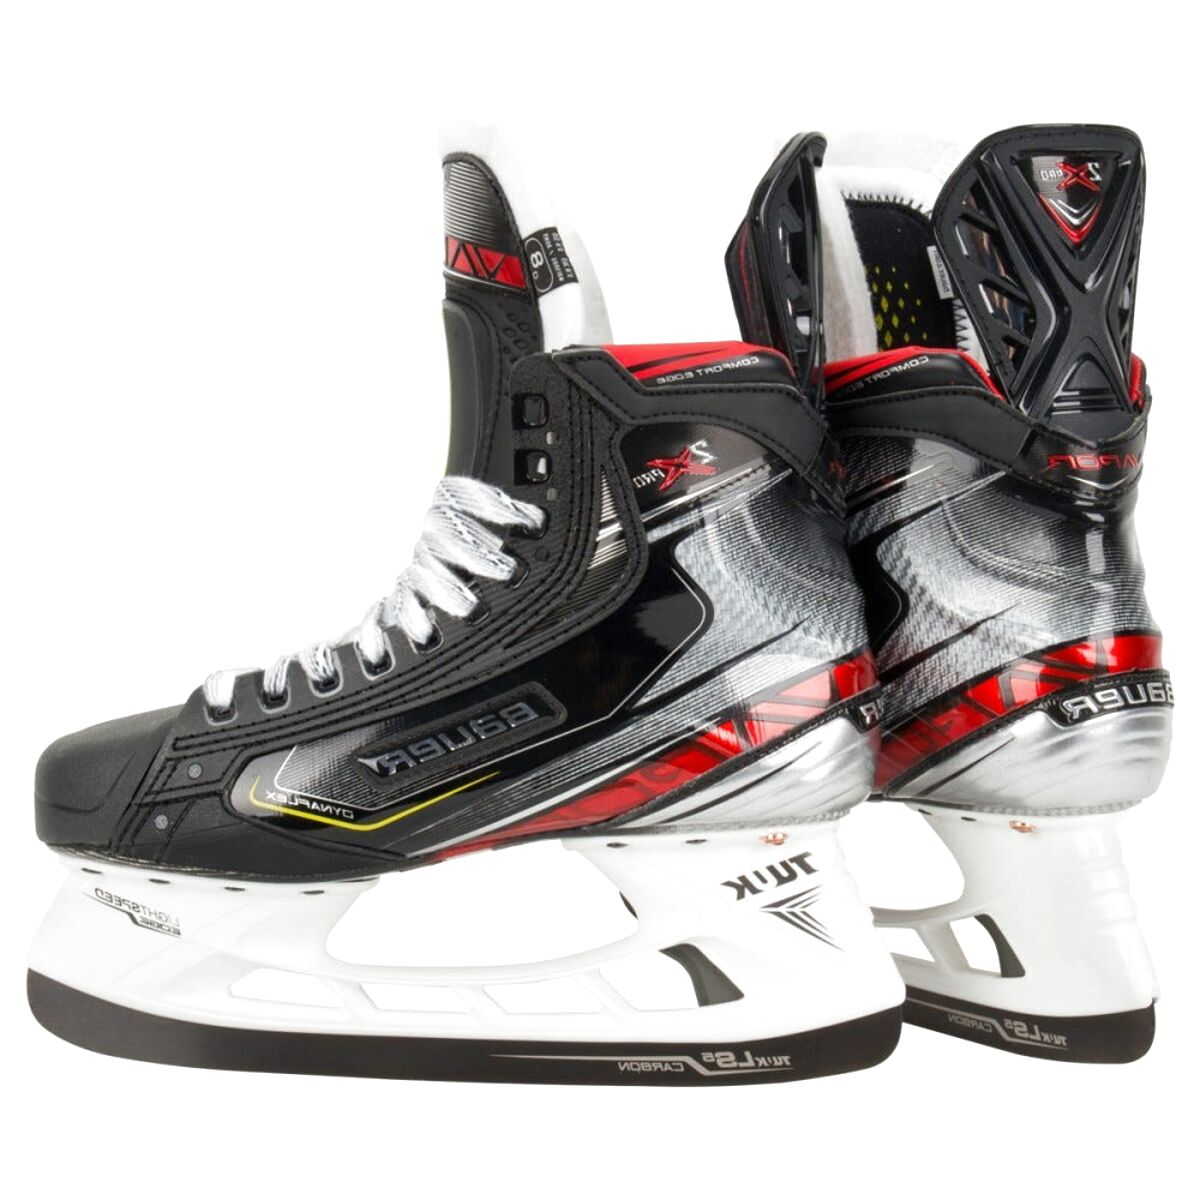 Bauer Vapor Skates for sale | Only 2 left at -65%